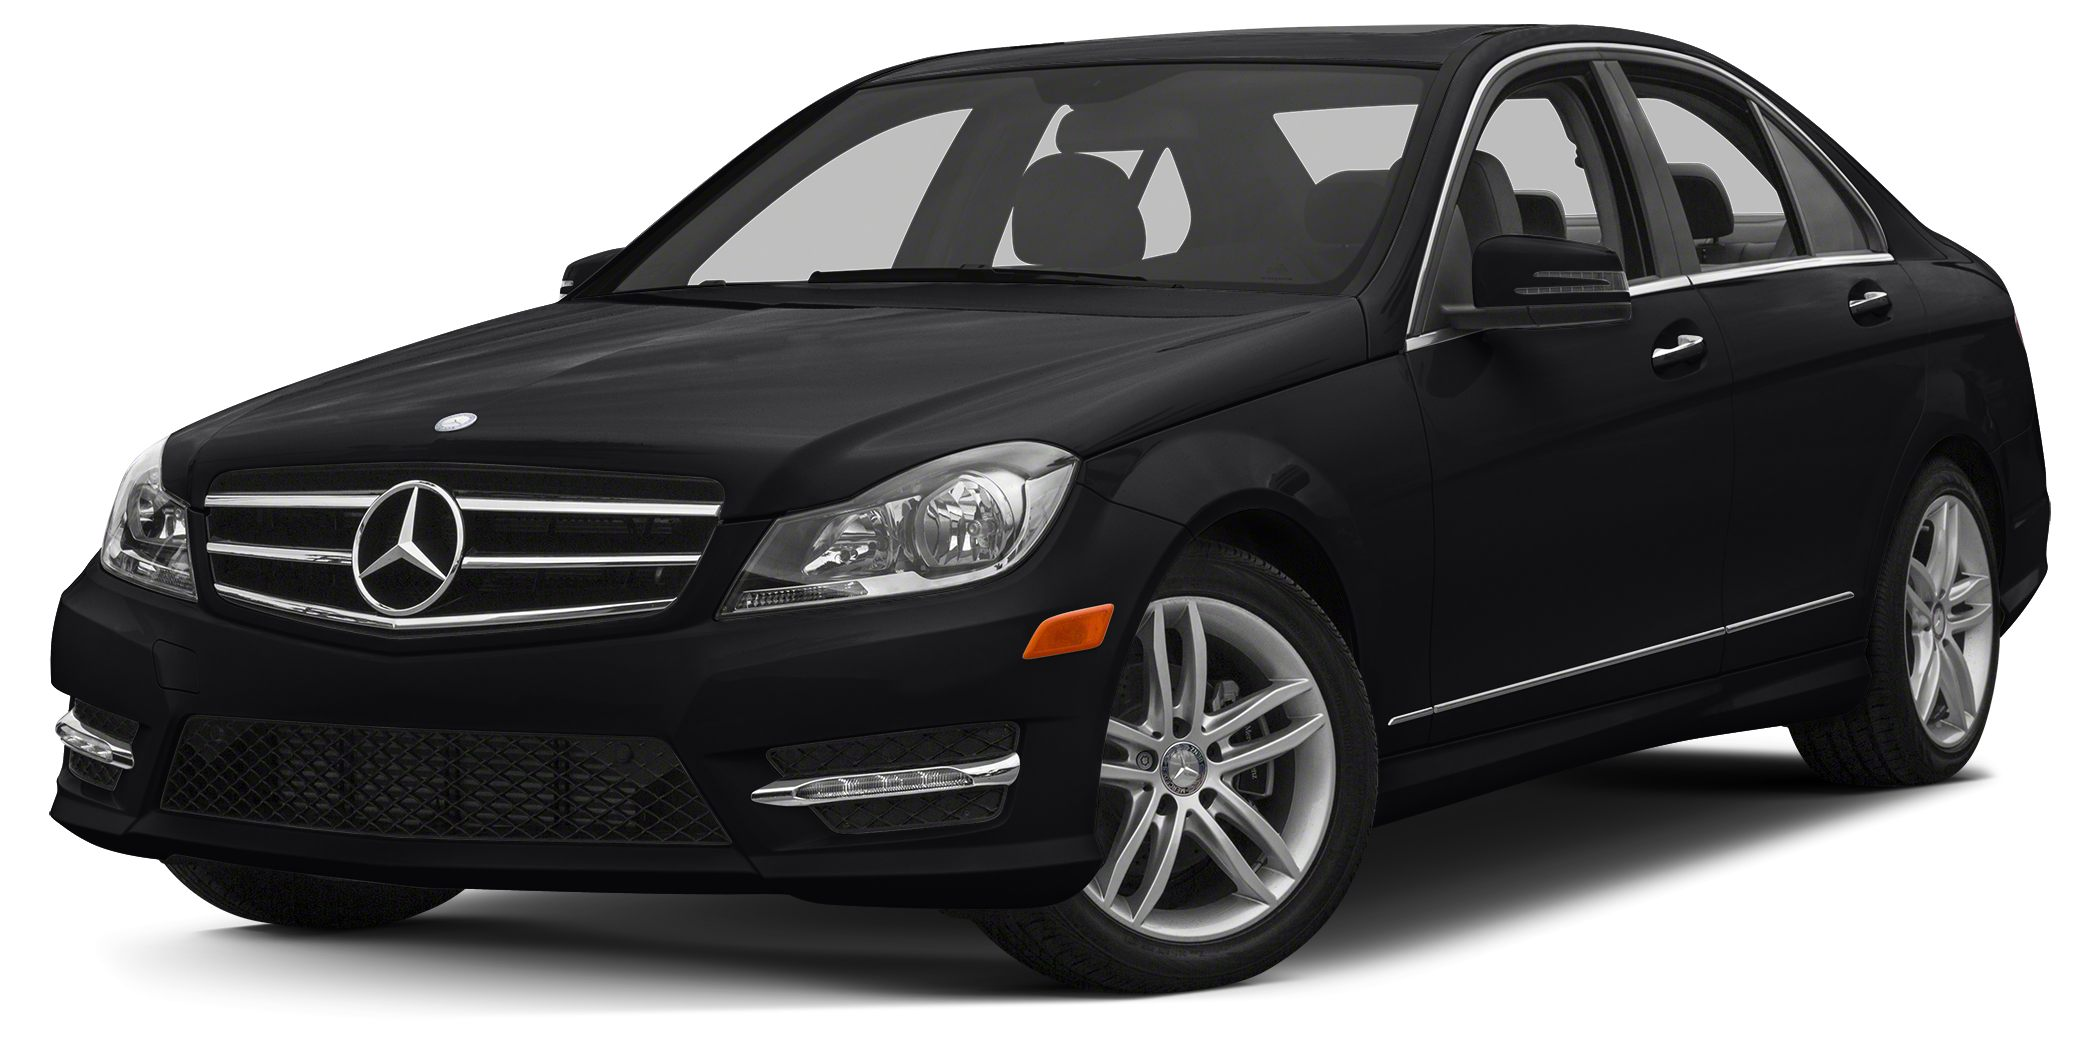 2014 MERCEDES C-Class C250 Sport Excellent Condition LOW MILES - 25897 REDUCED FROM 25900 E